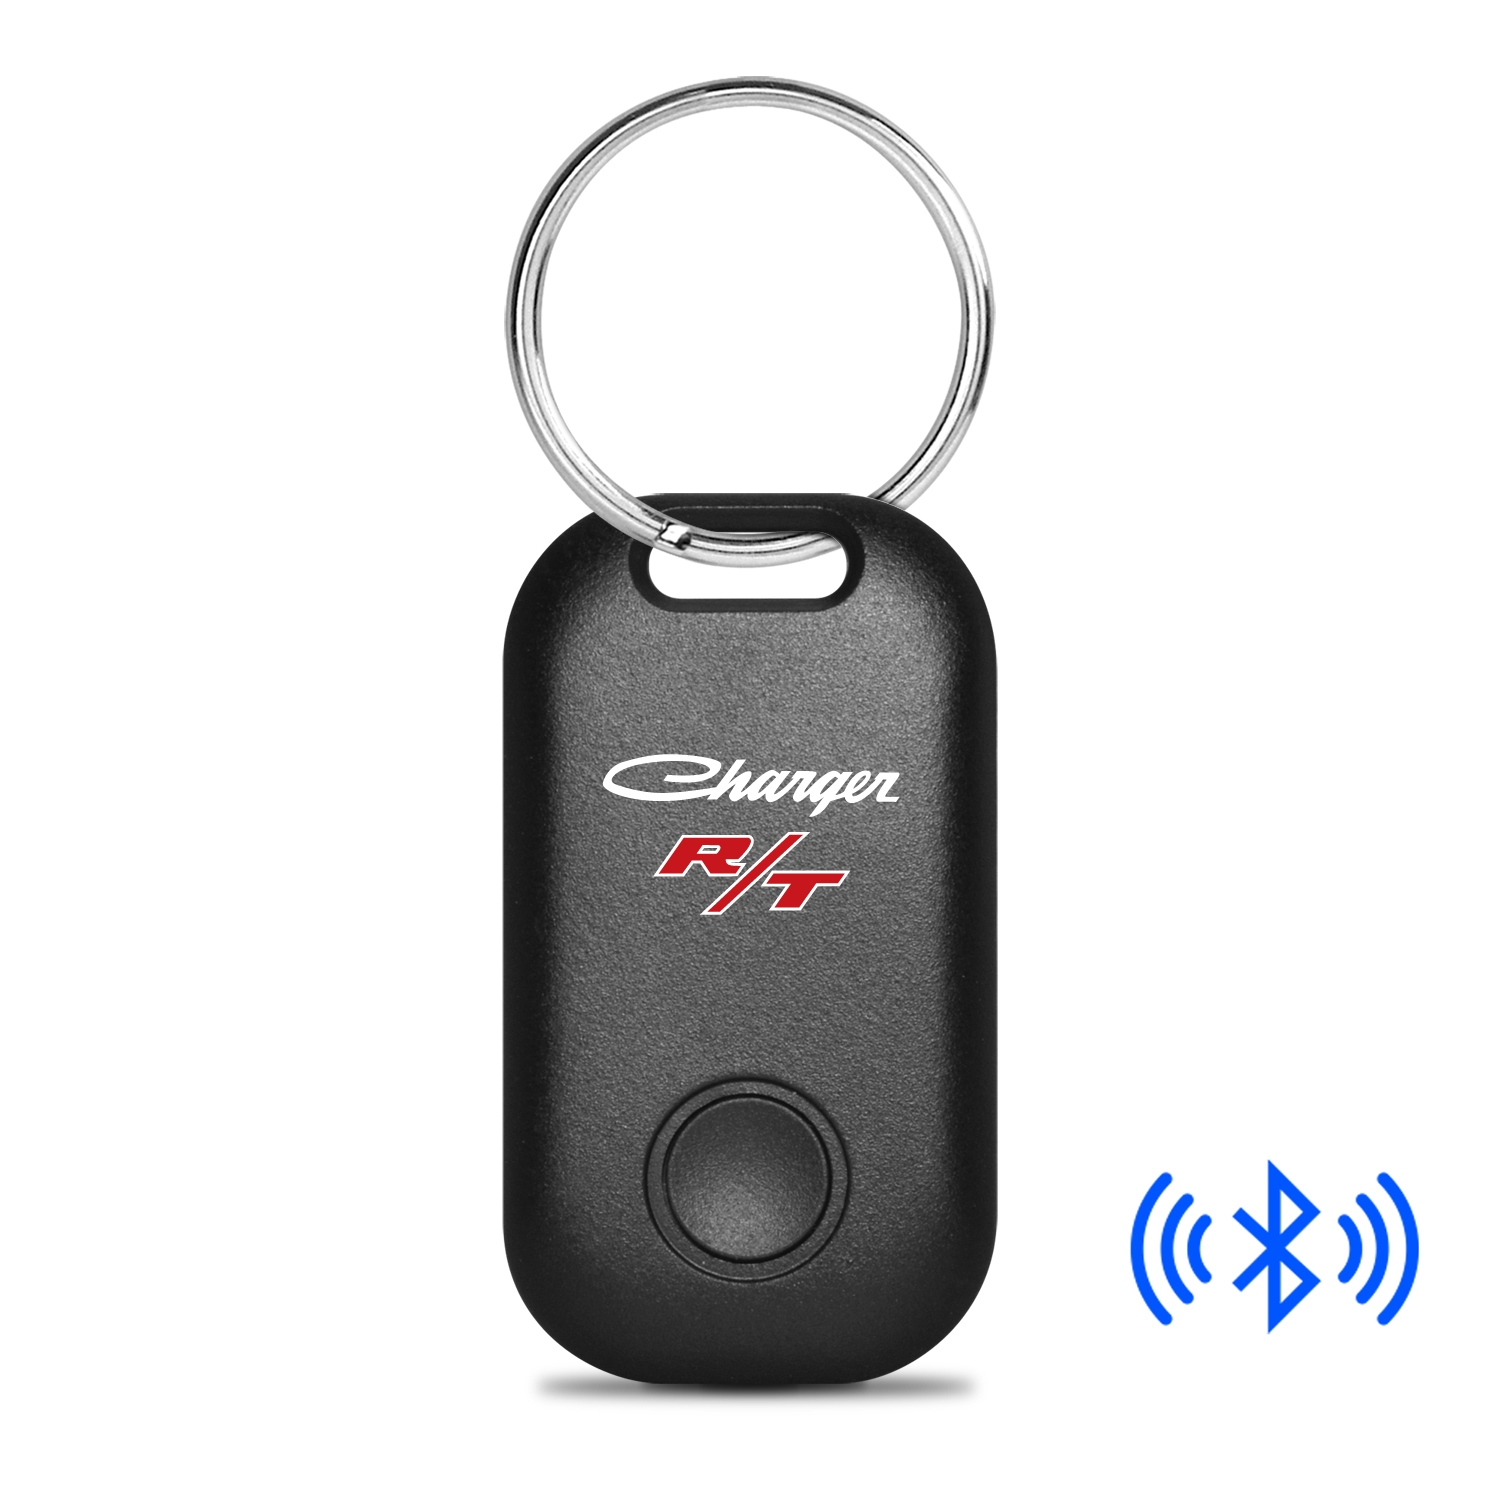 Dodge Charger R/T Classic Bluetooth Smart Key Finder Black Key Chain